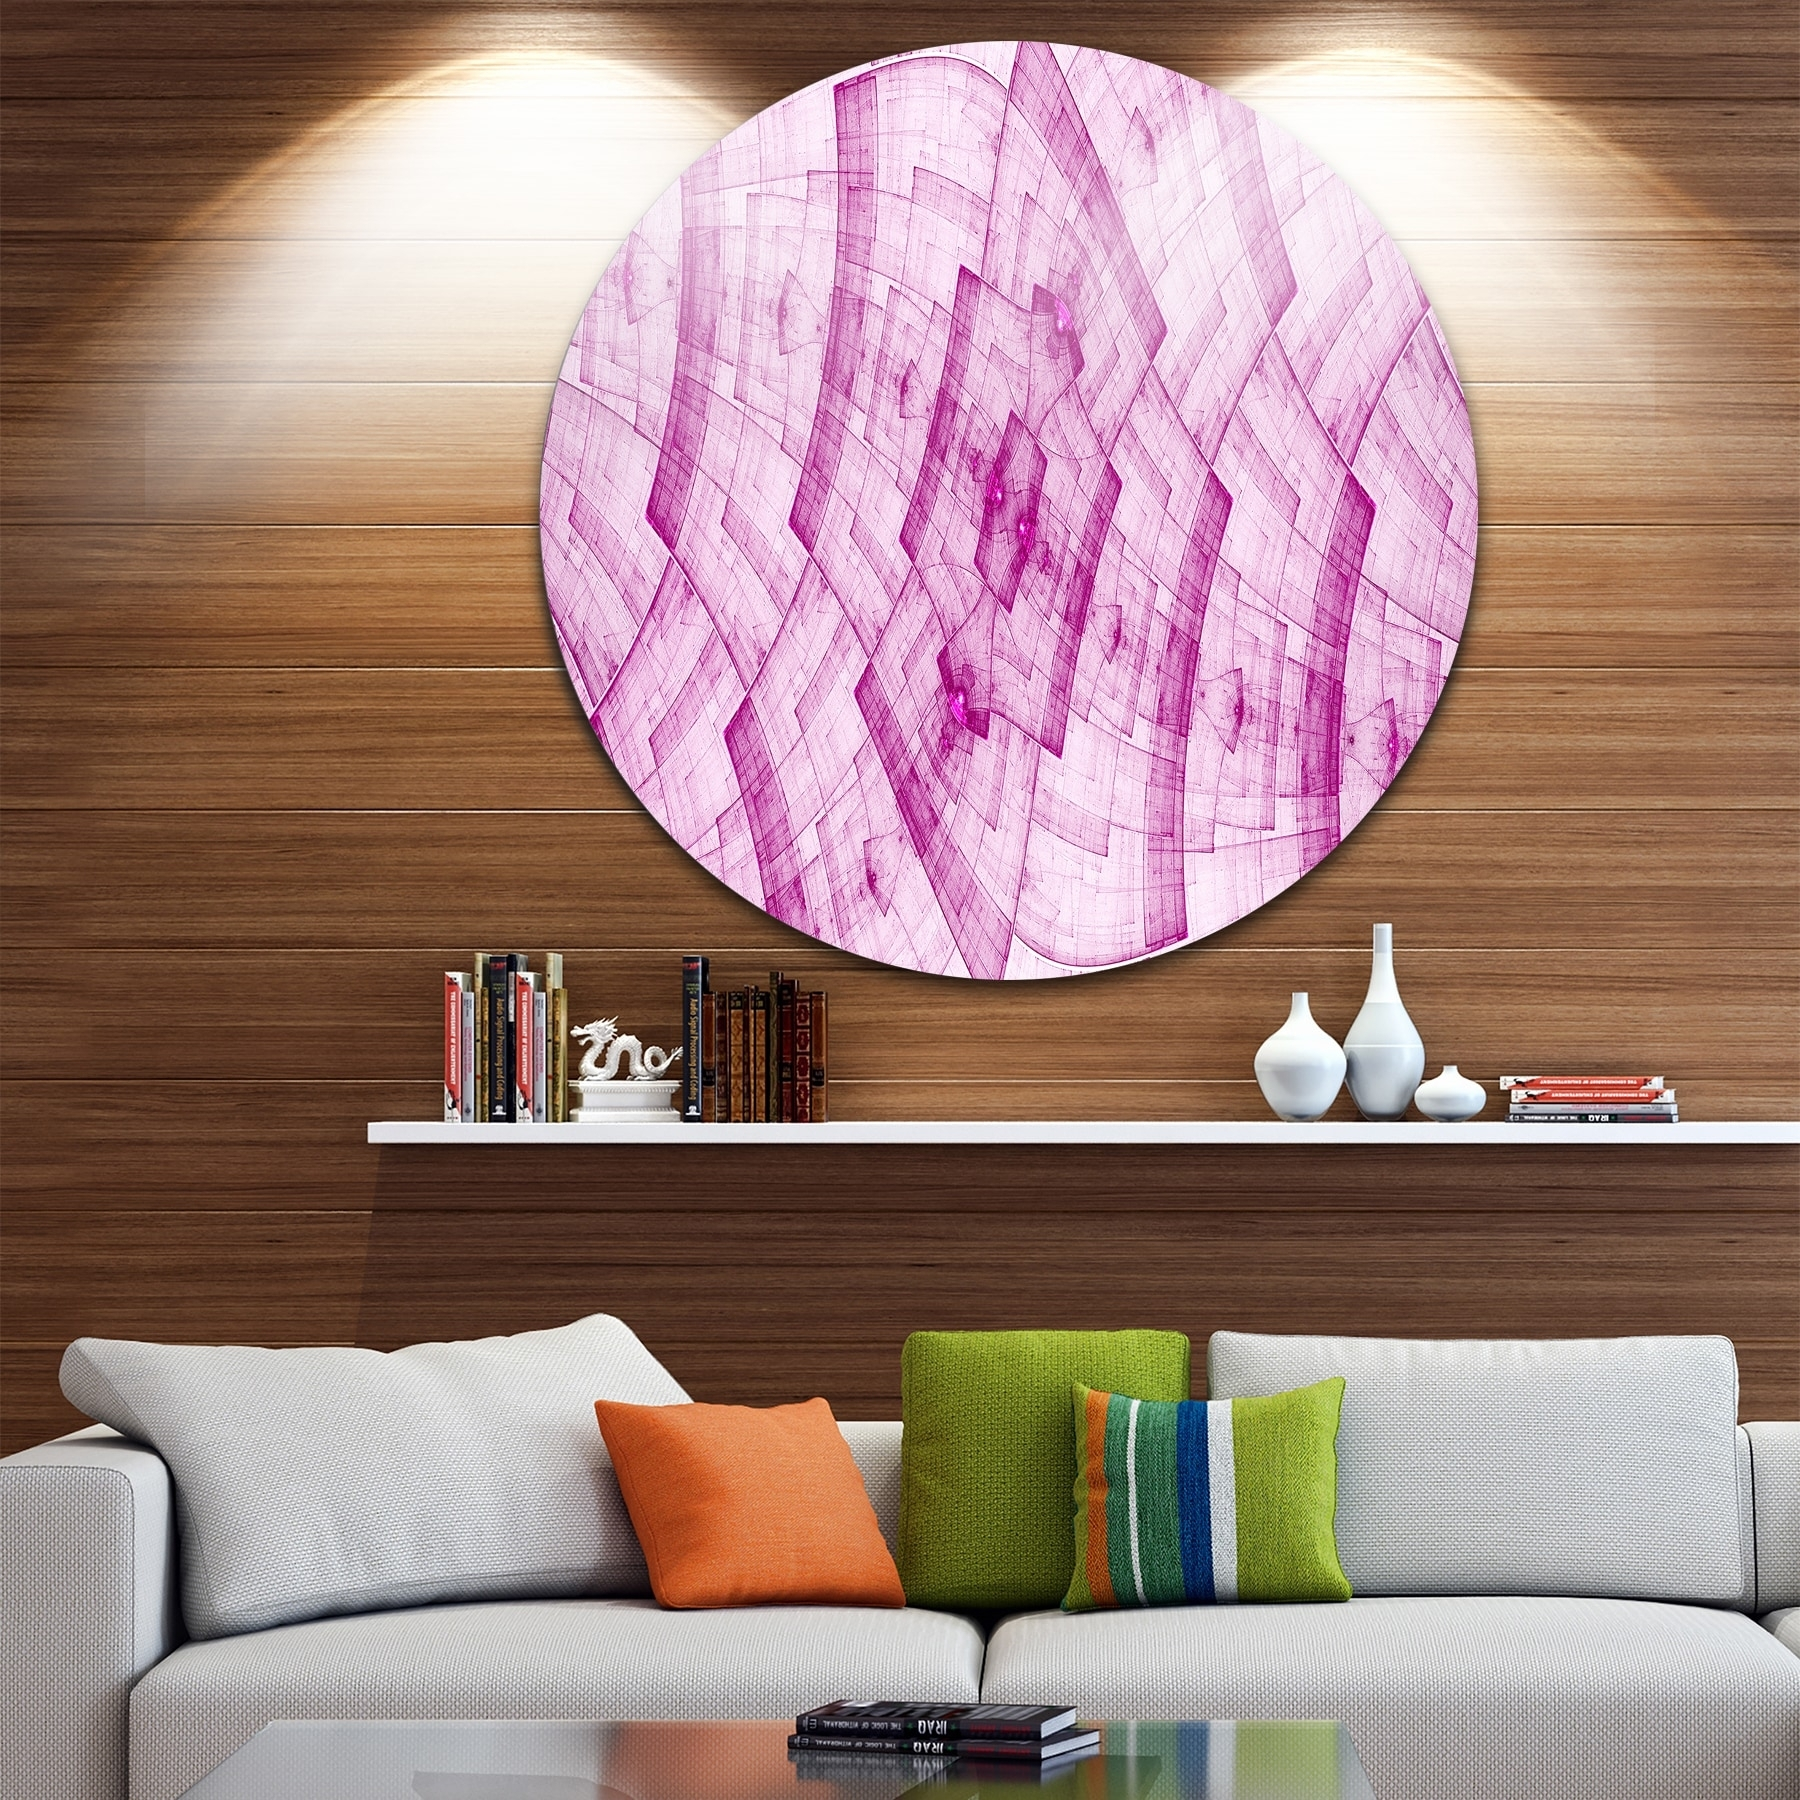 Designart 'light Pink Psychedelic Fractal Metal Grid' Abstract Intended For Circle Wall Art (View 11 of 20)